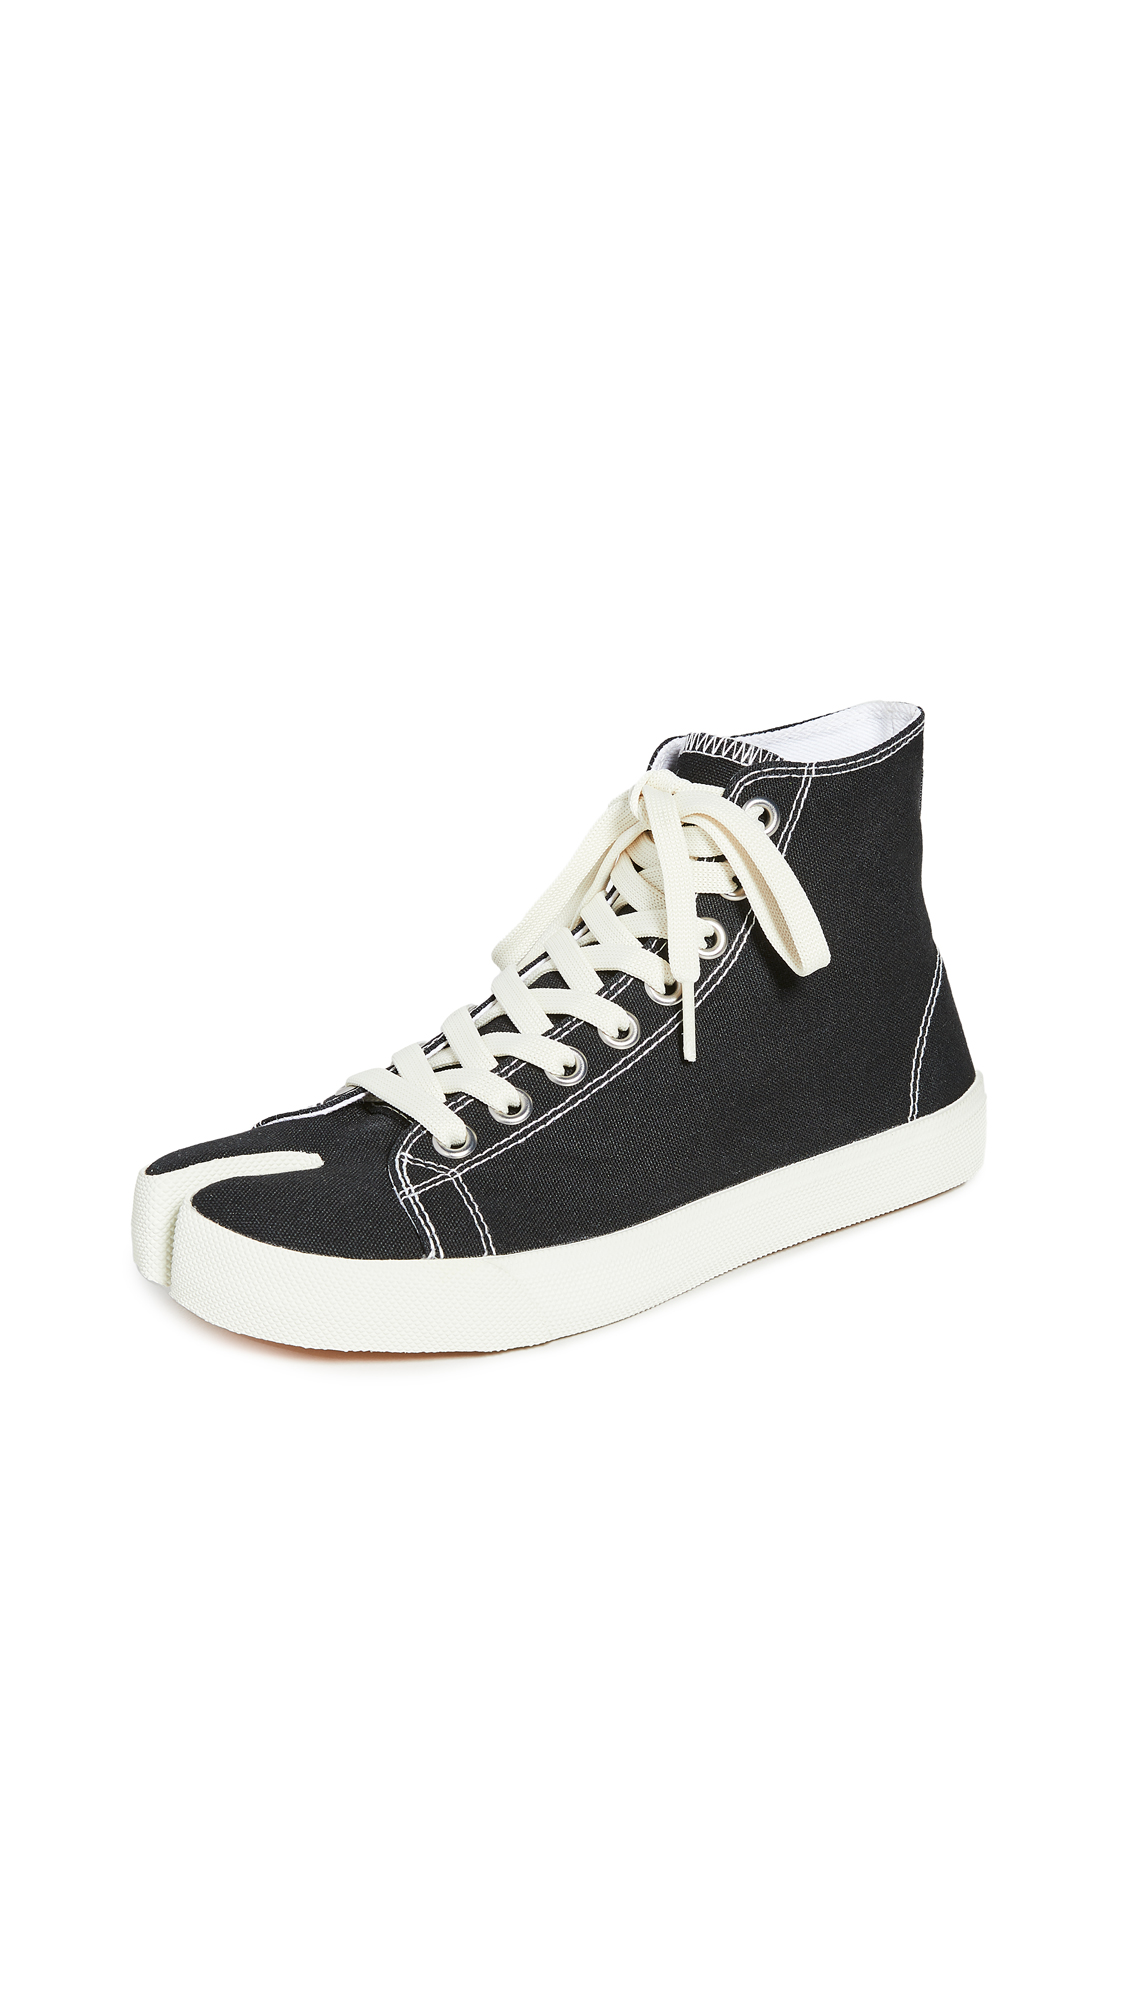 Buy Maison Margiela online - photo of Maison Margiela Tabi High Top Sneakers